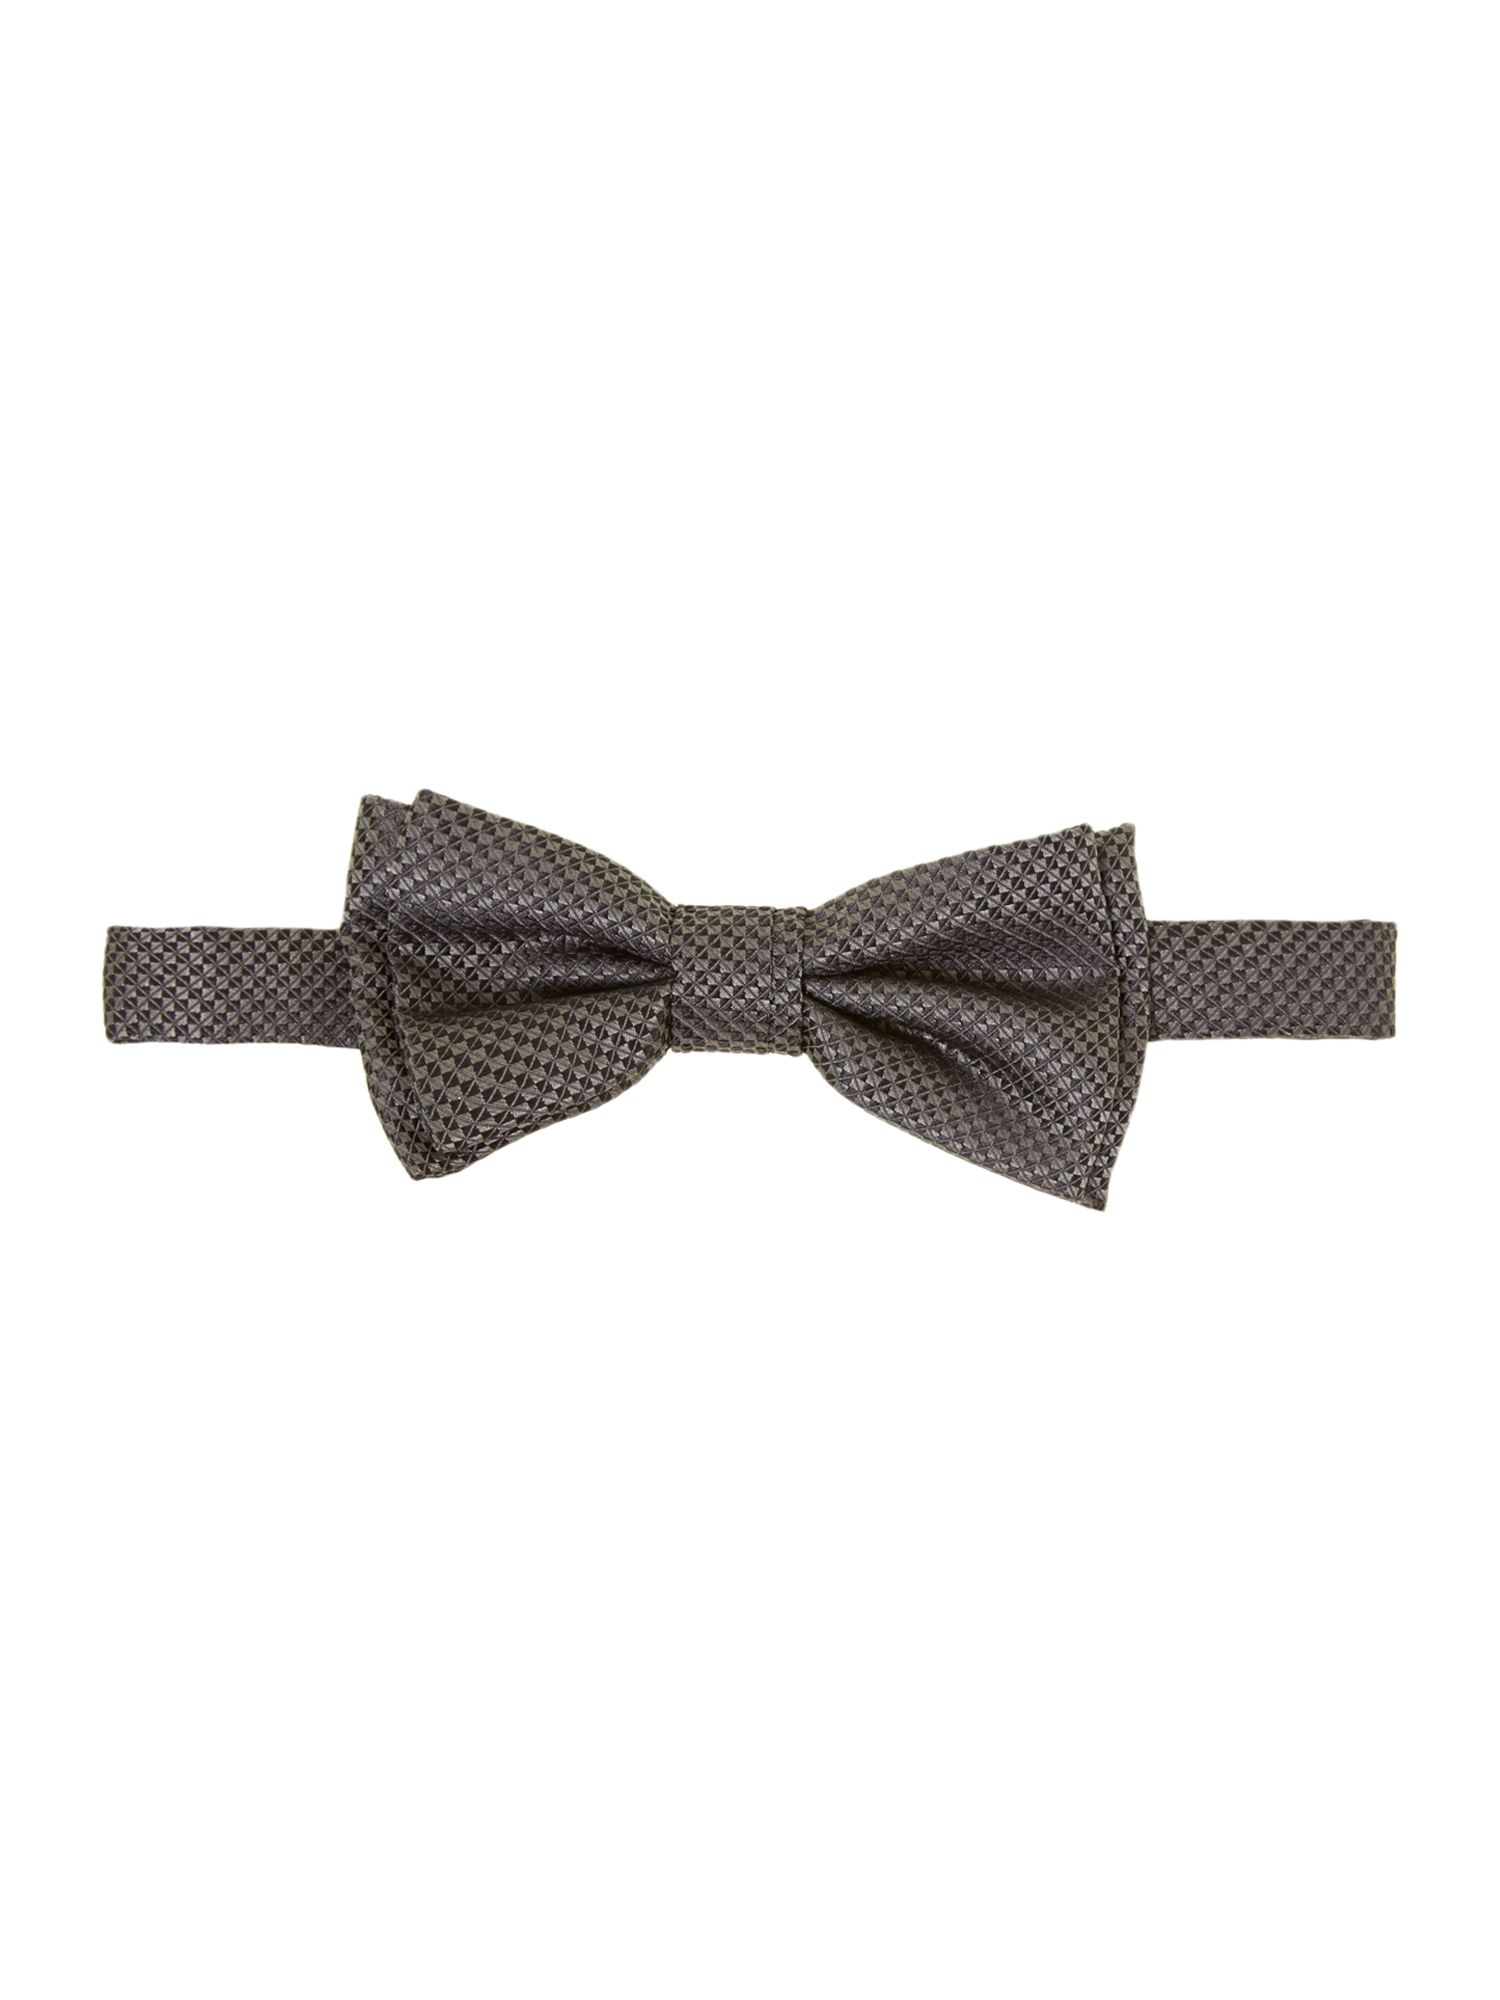 Geometric patterned bow tie